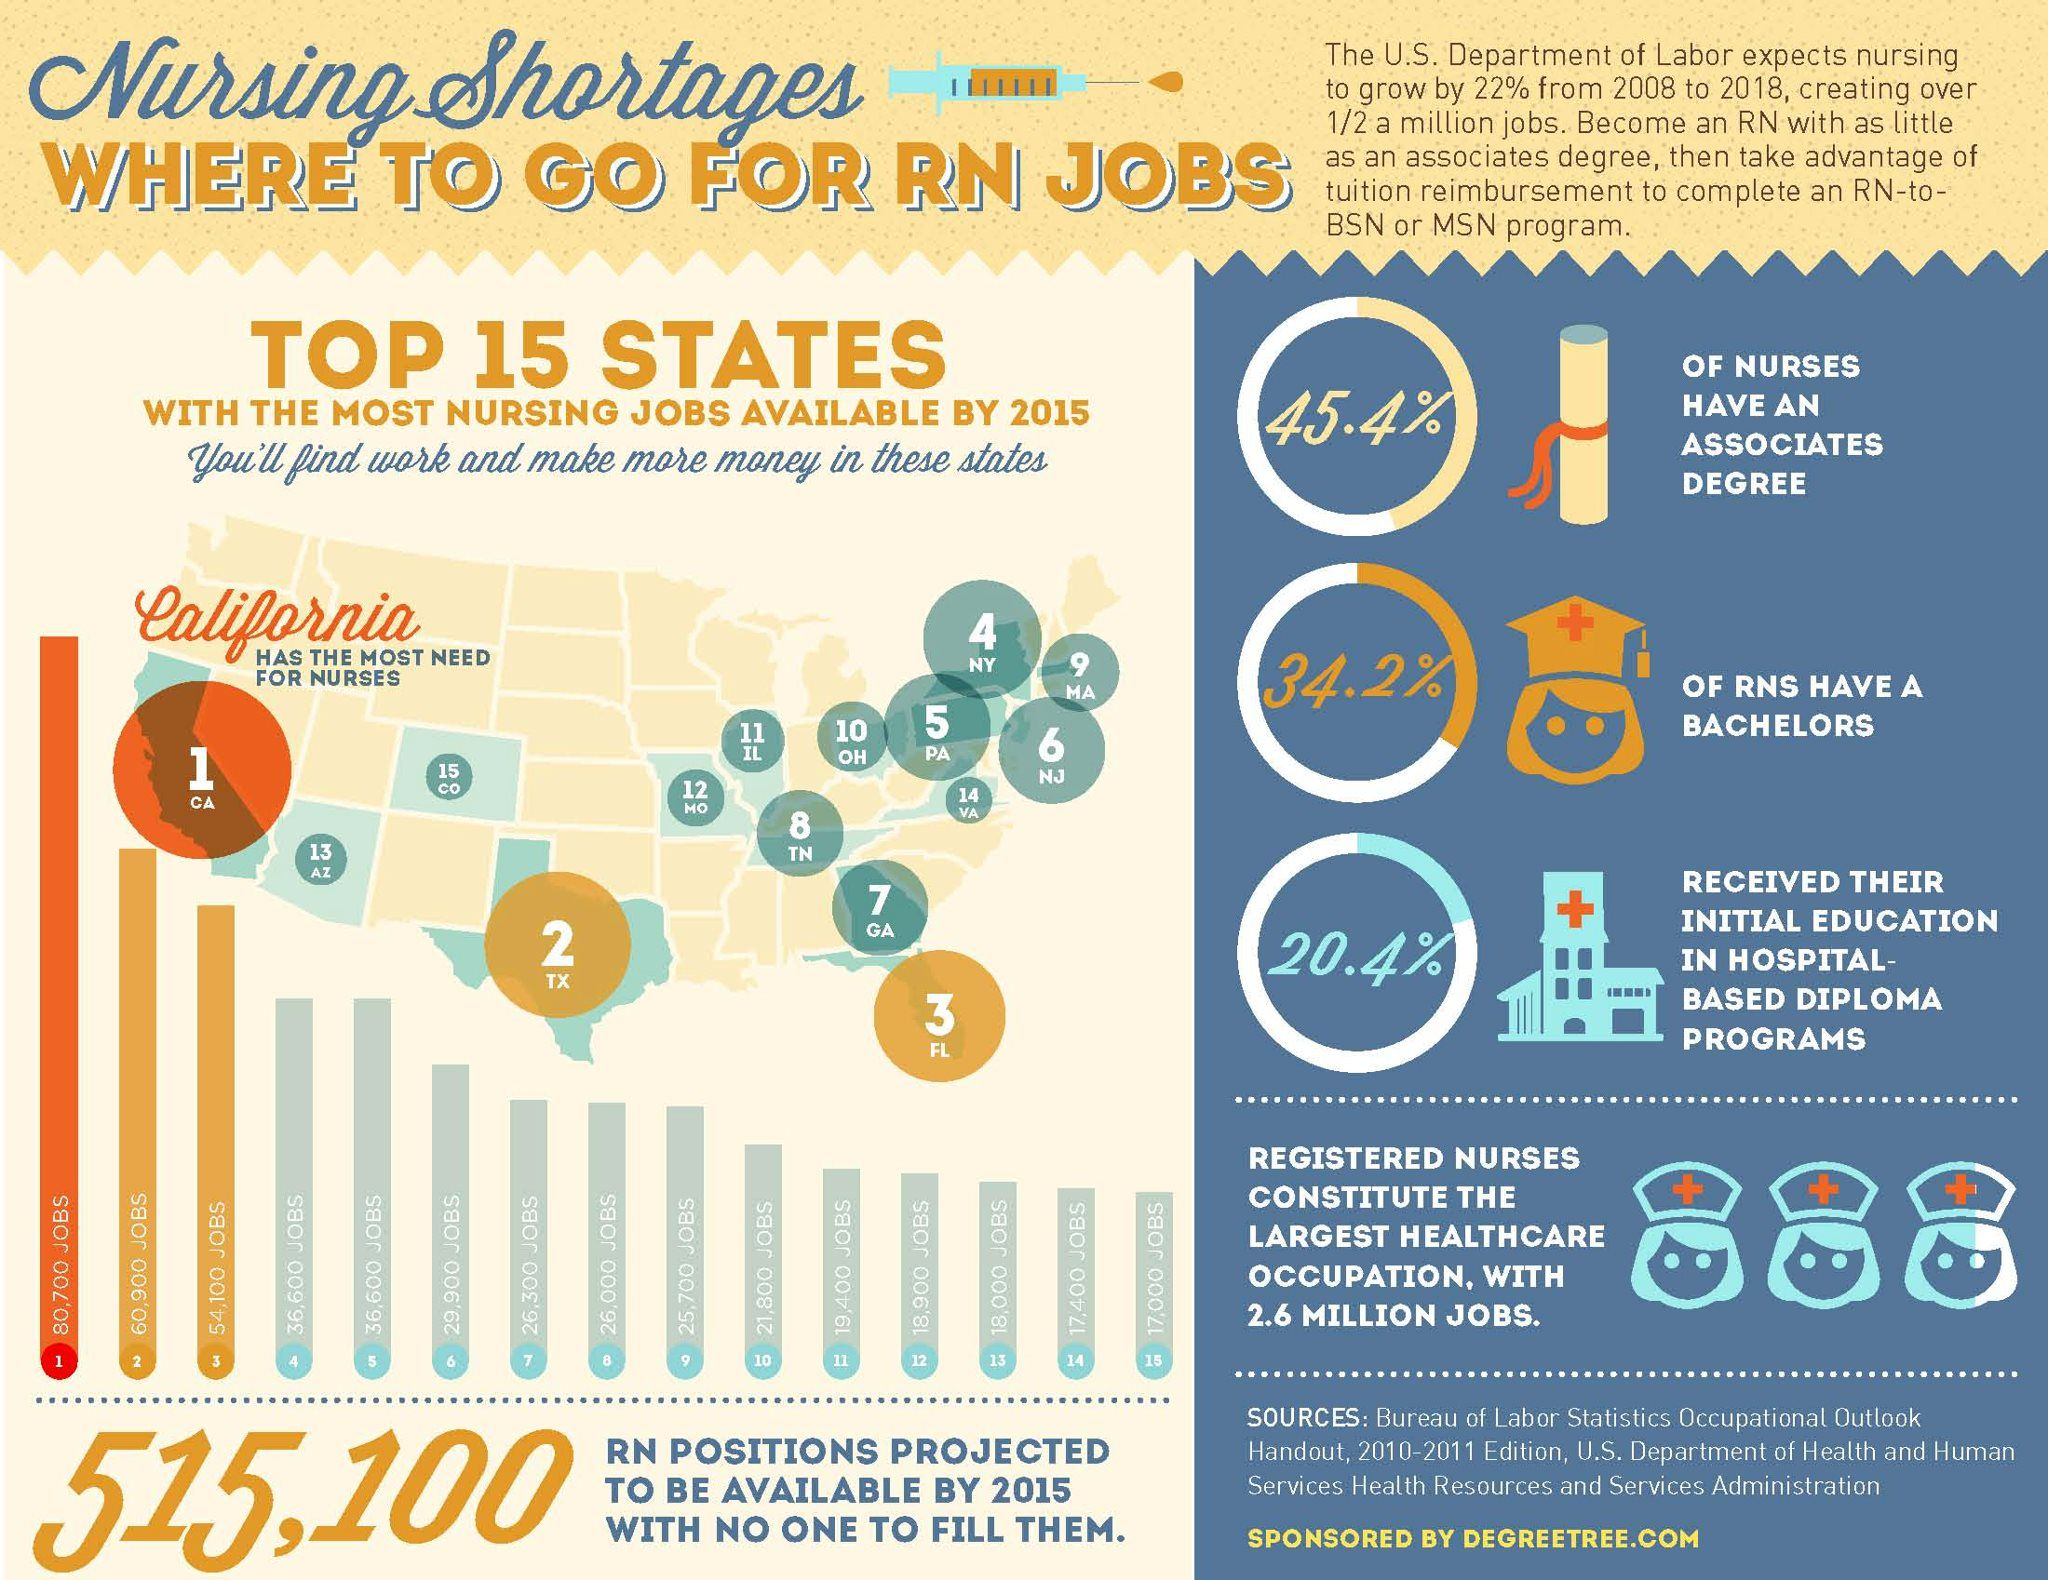 Where The Jobs Are For Rns  About Me  Nursing Shortage, Registered Nurse Jobs, Nursing Jobs-2300